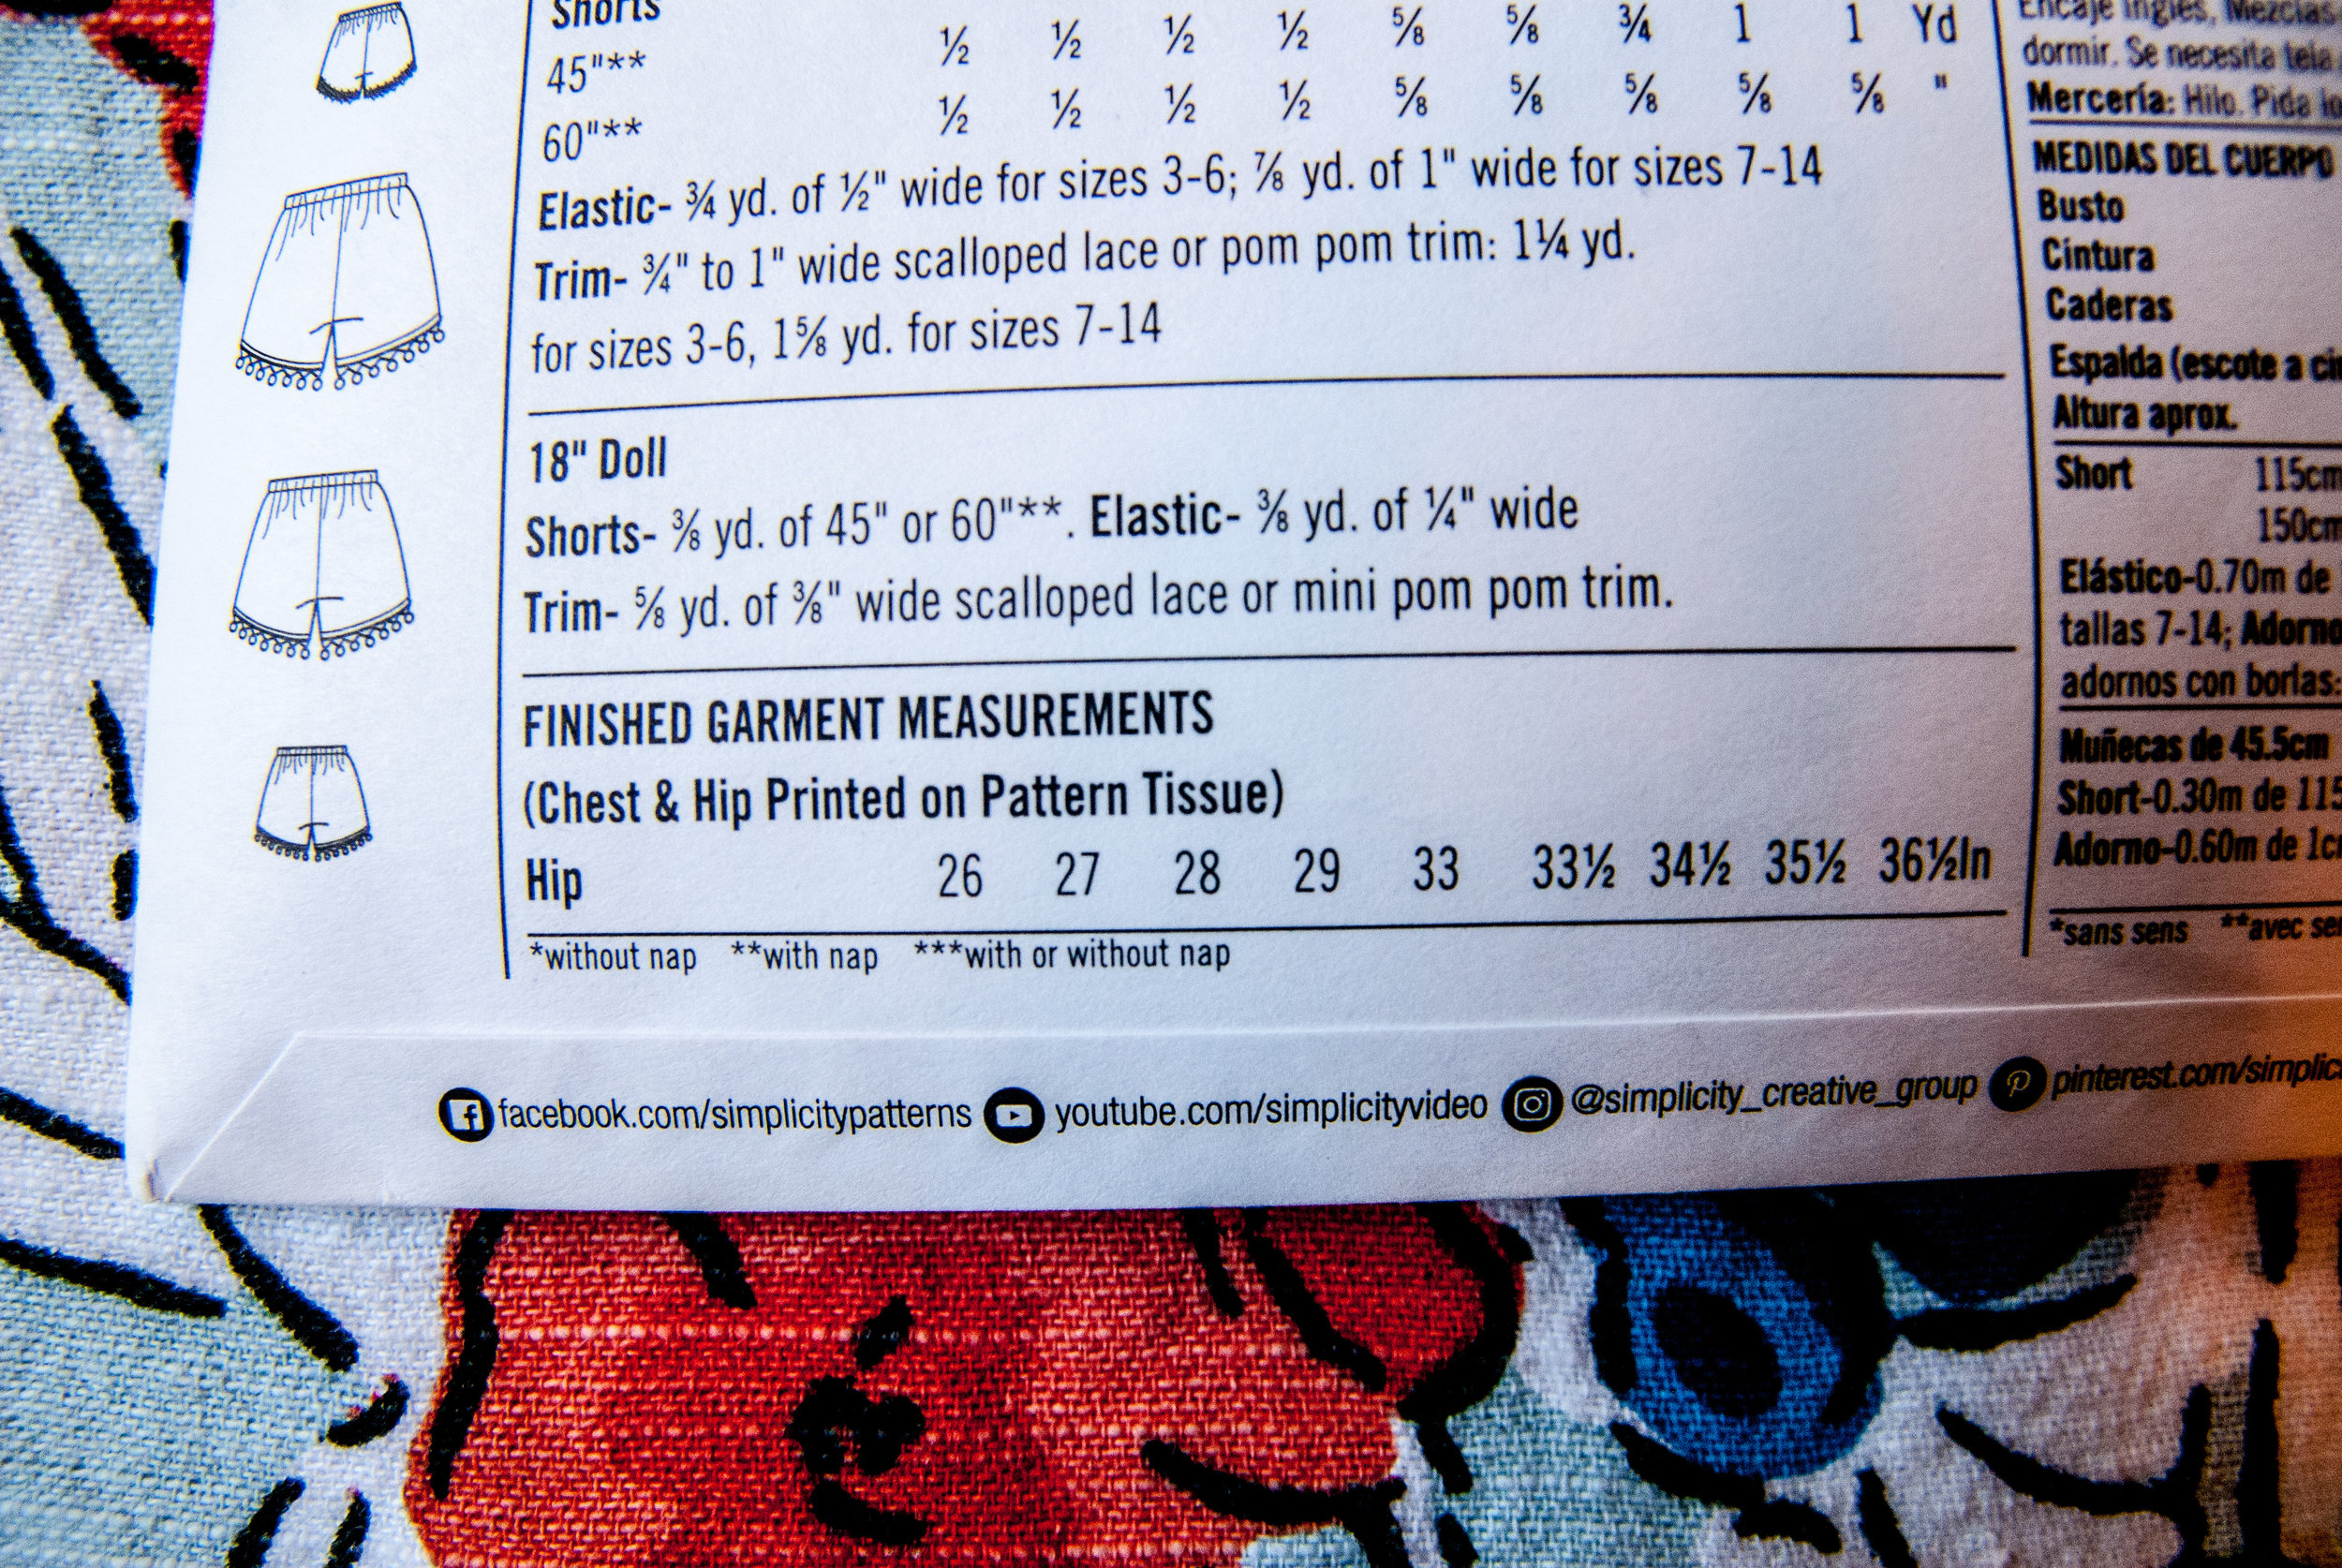 How to read a sewing pattern by pincutsewstudio.com